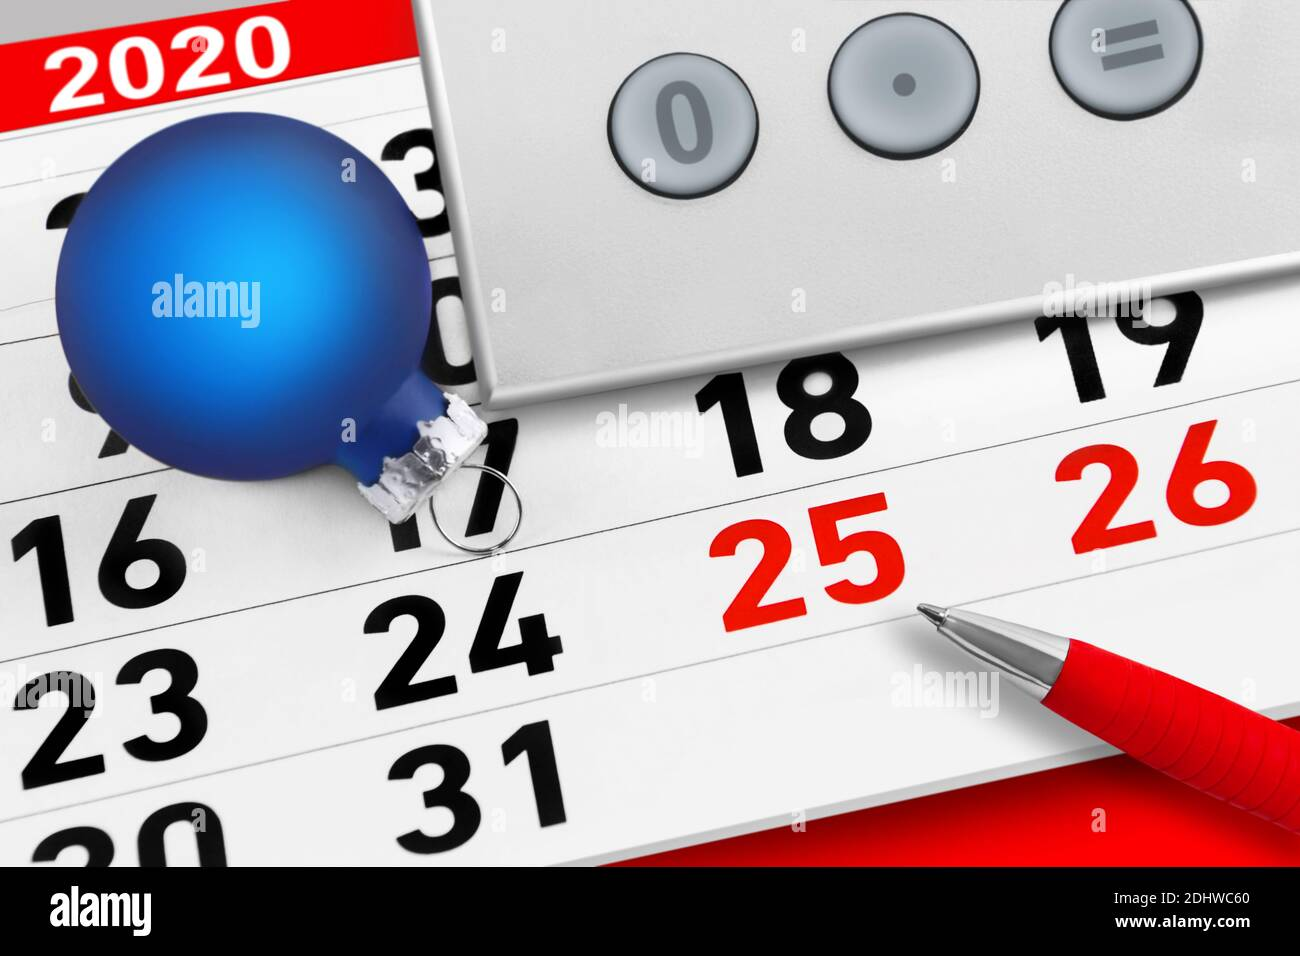 Christmas time 2020 calendar with calculator and red pen Stock Photo